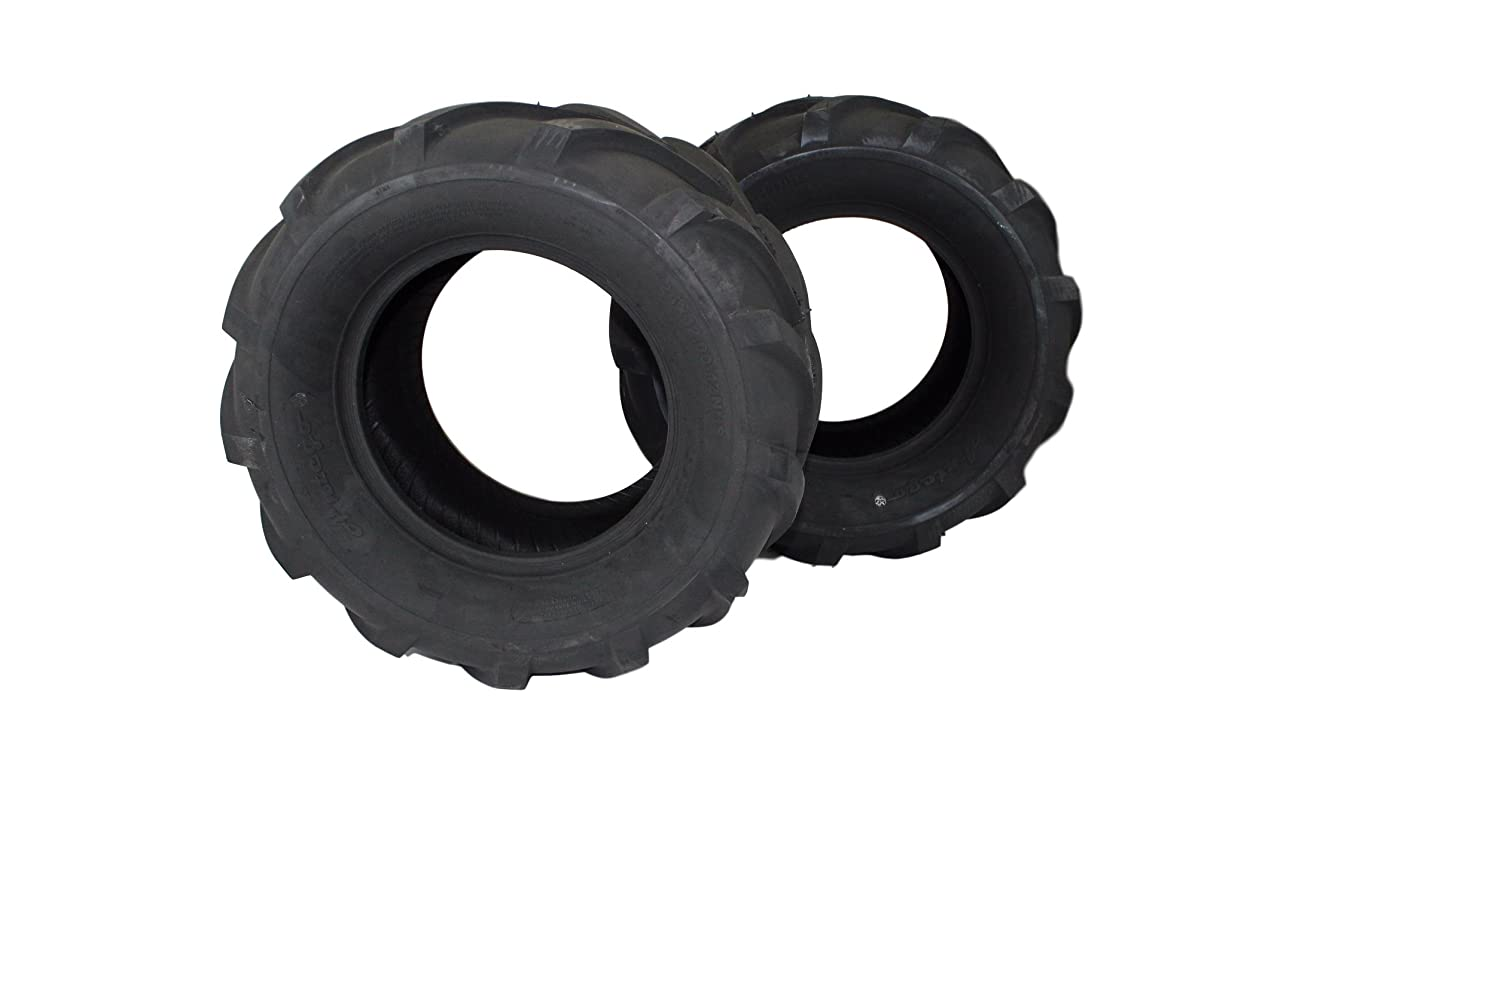 (Set of 2) 24x12 00-12 ATV/UTV, Lawn & Garden, Lawn Tractor, Mower Tires 4  Ply ATW-041